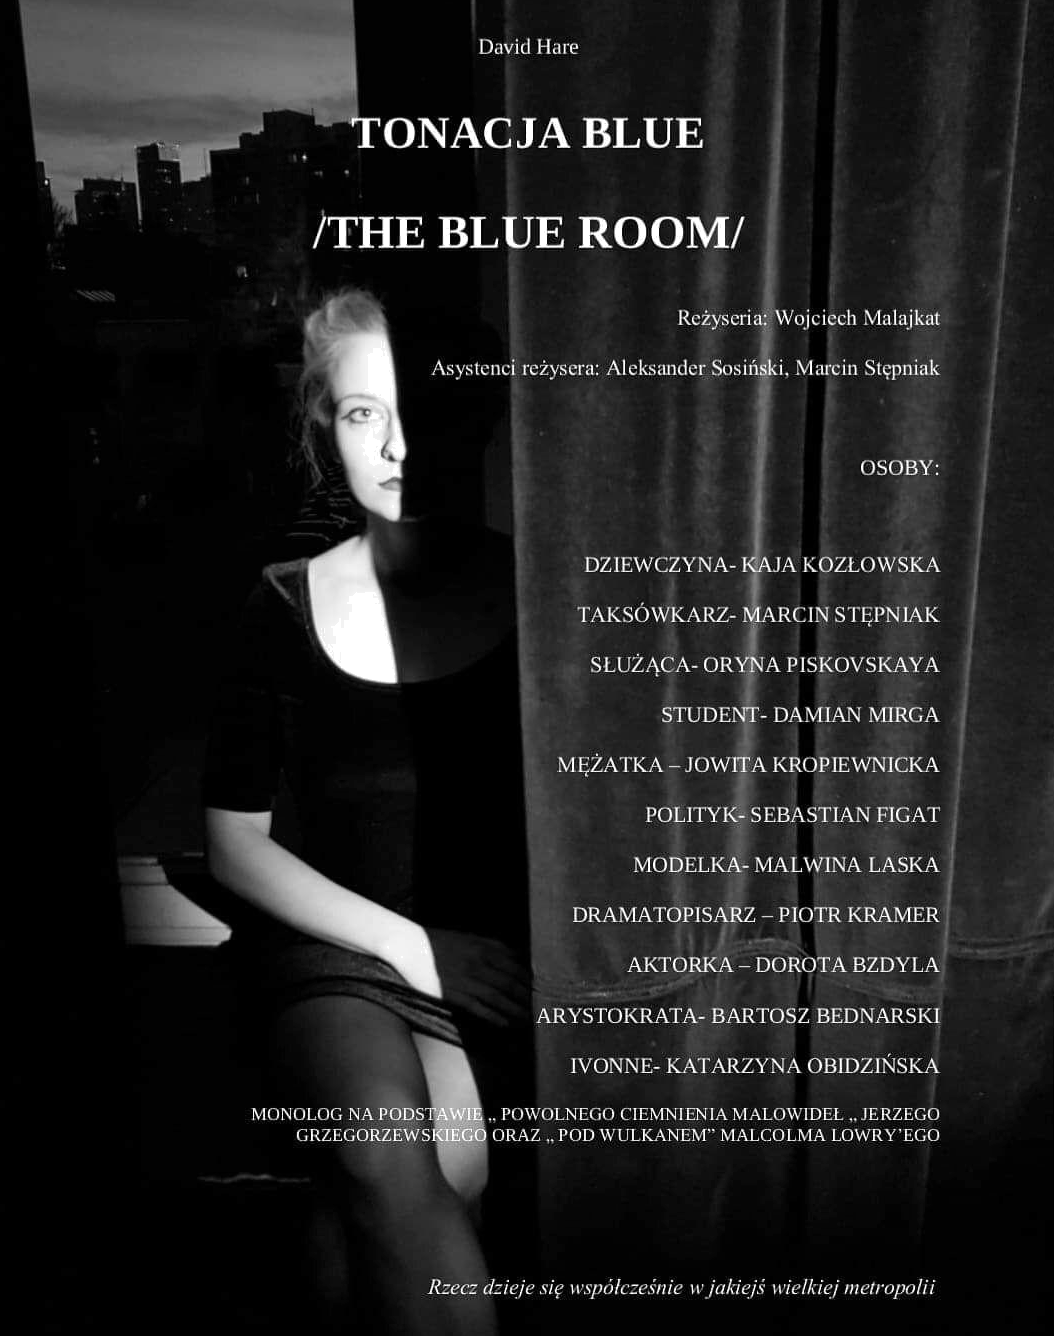 THE BLUE ROOM, David Hare